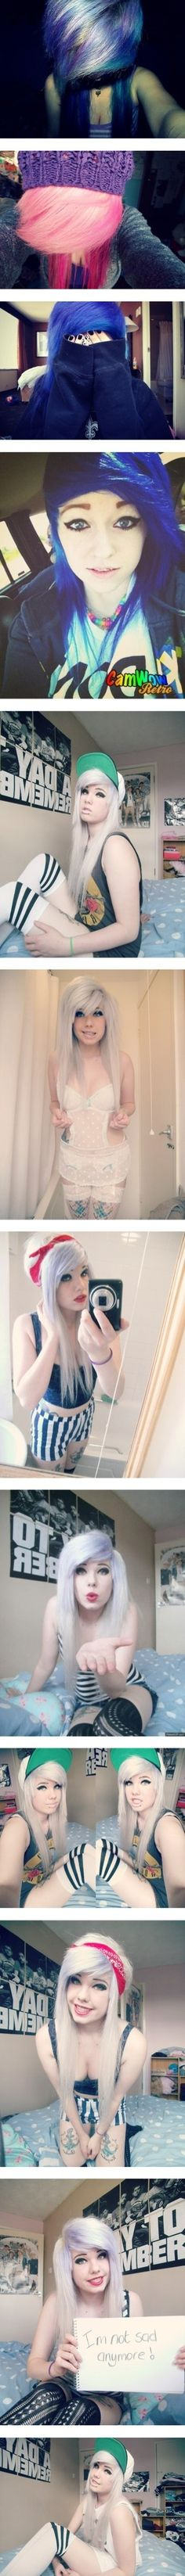 Beautiful Girls and Emo Girls 3 by hosenm ❤ liked on Polyvore